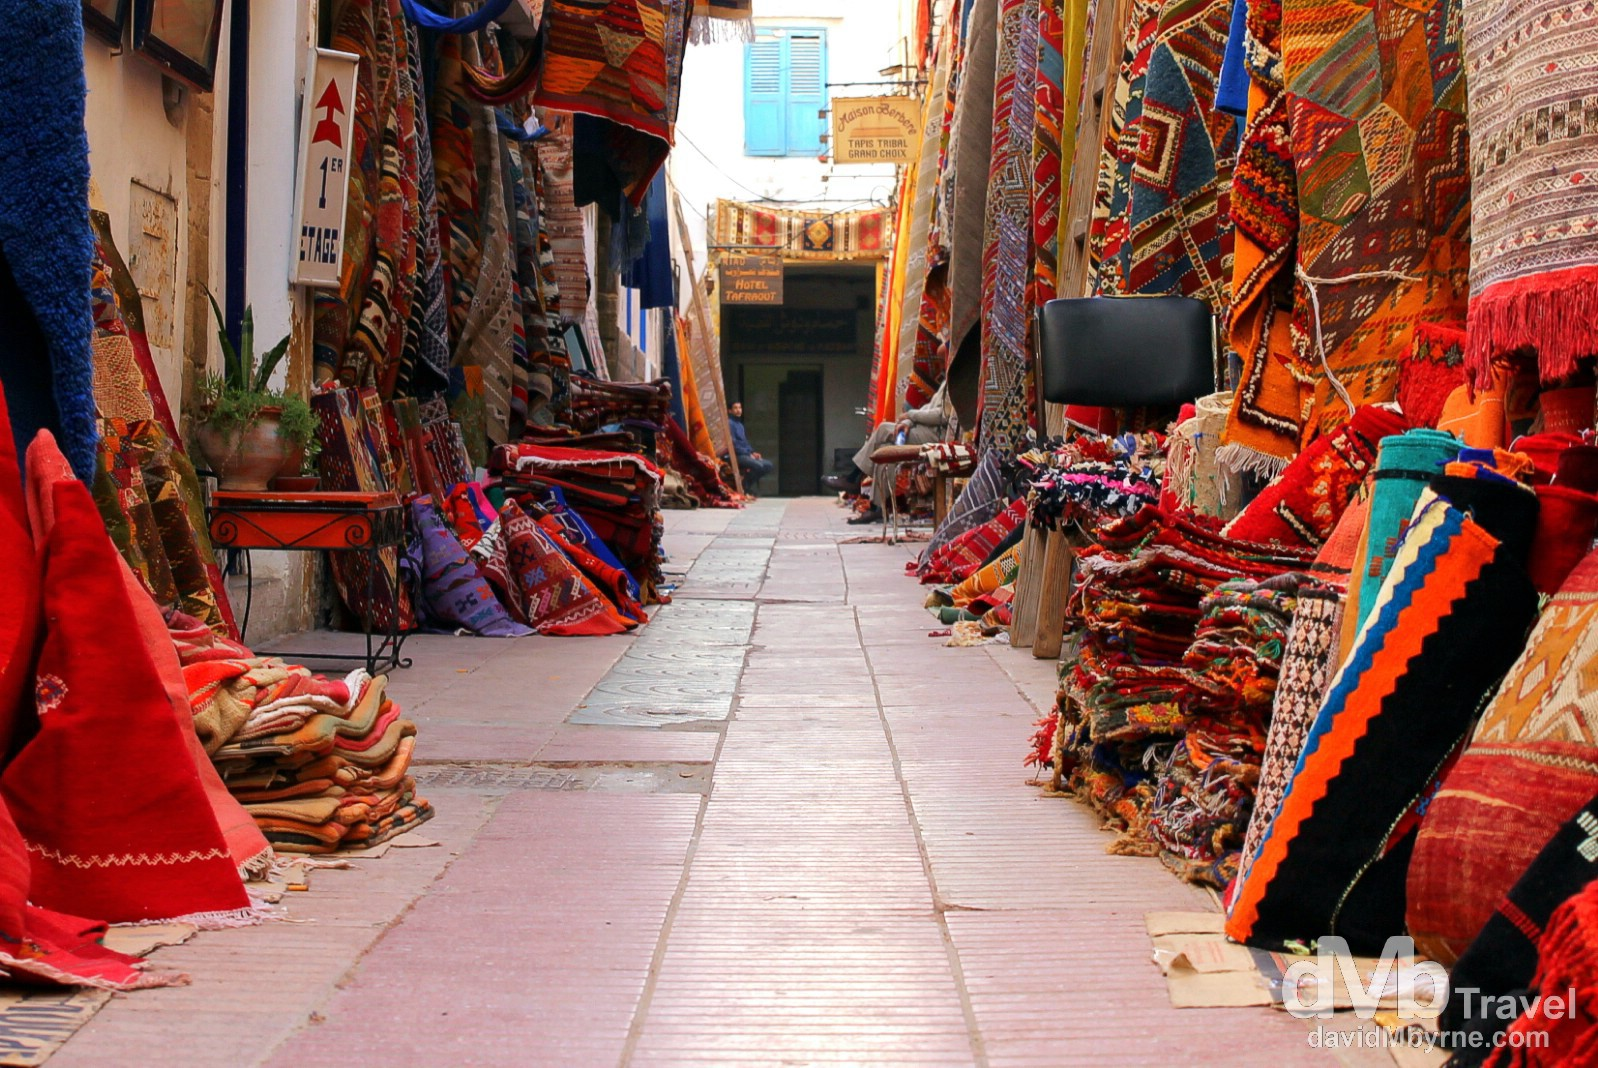 A lane selling carpets in the labyrinth medina in Essaouira, Morocco. May 3rd, 2014.